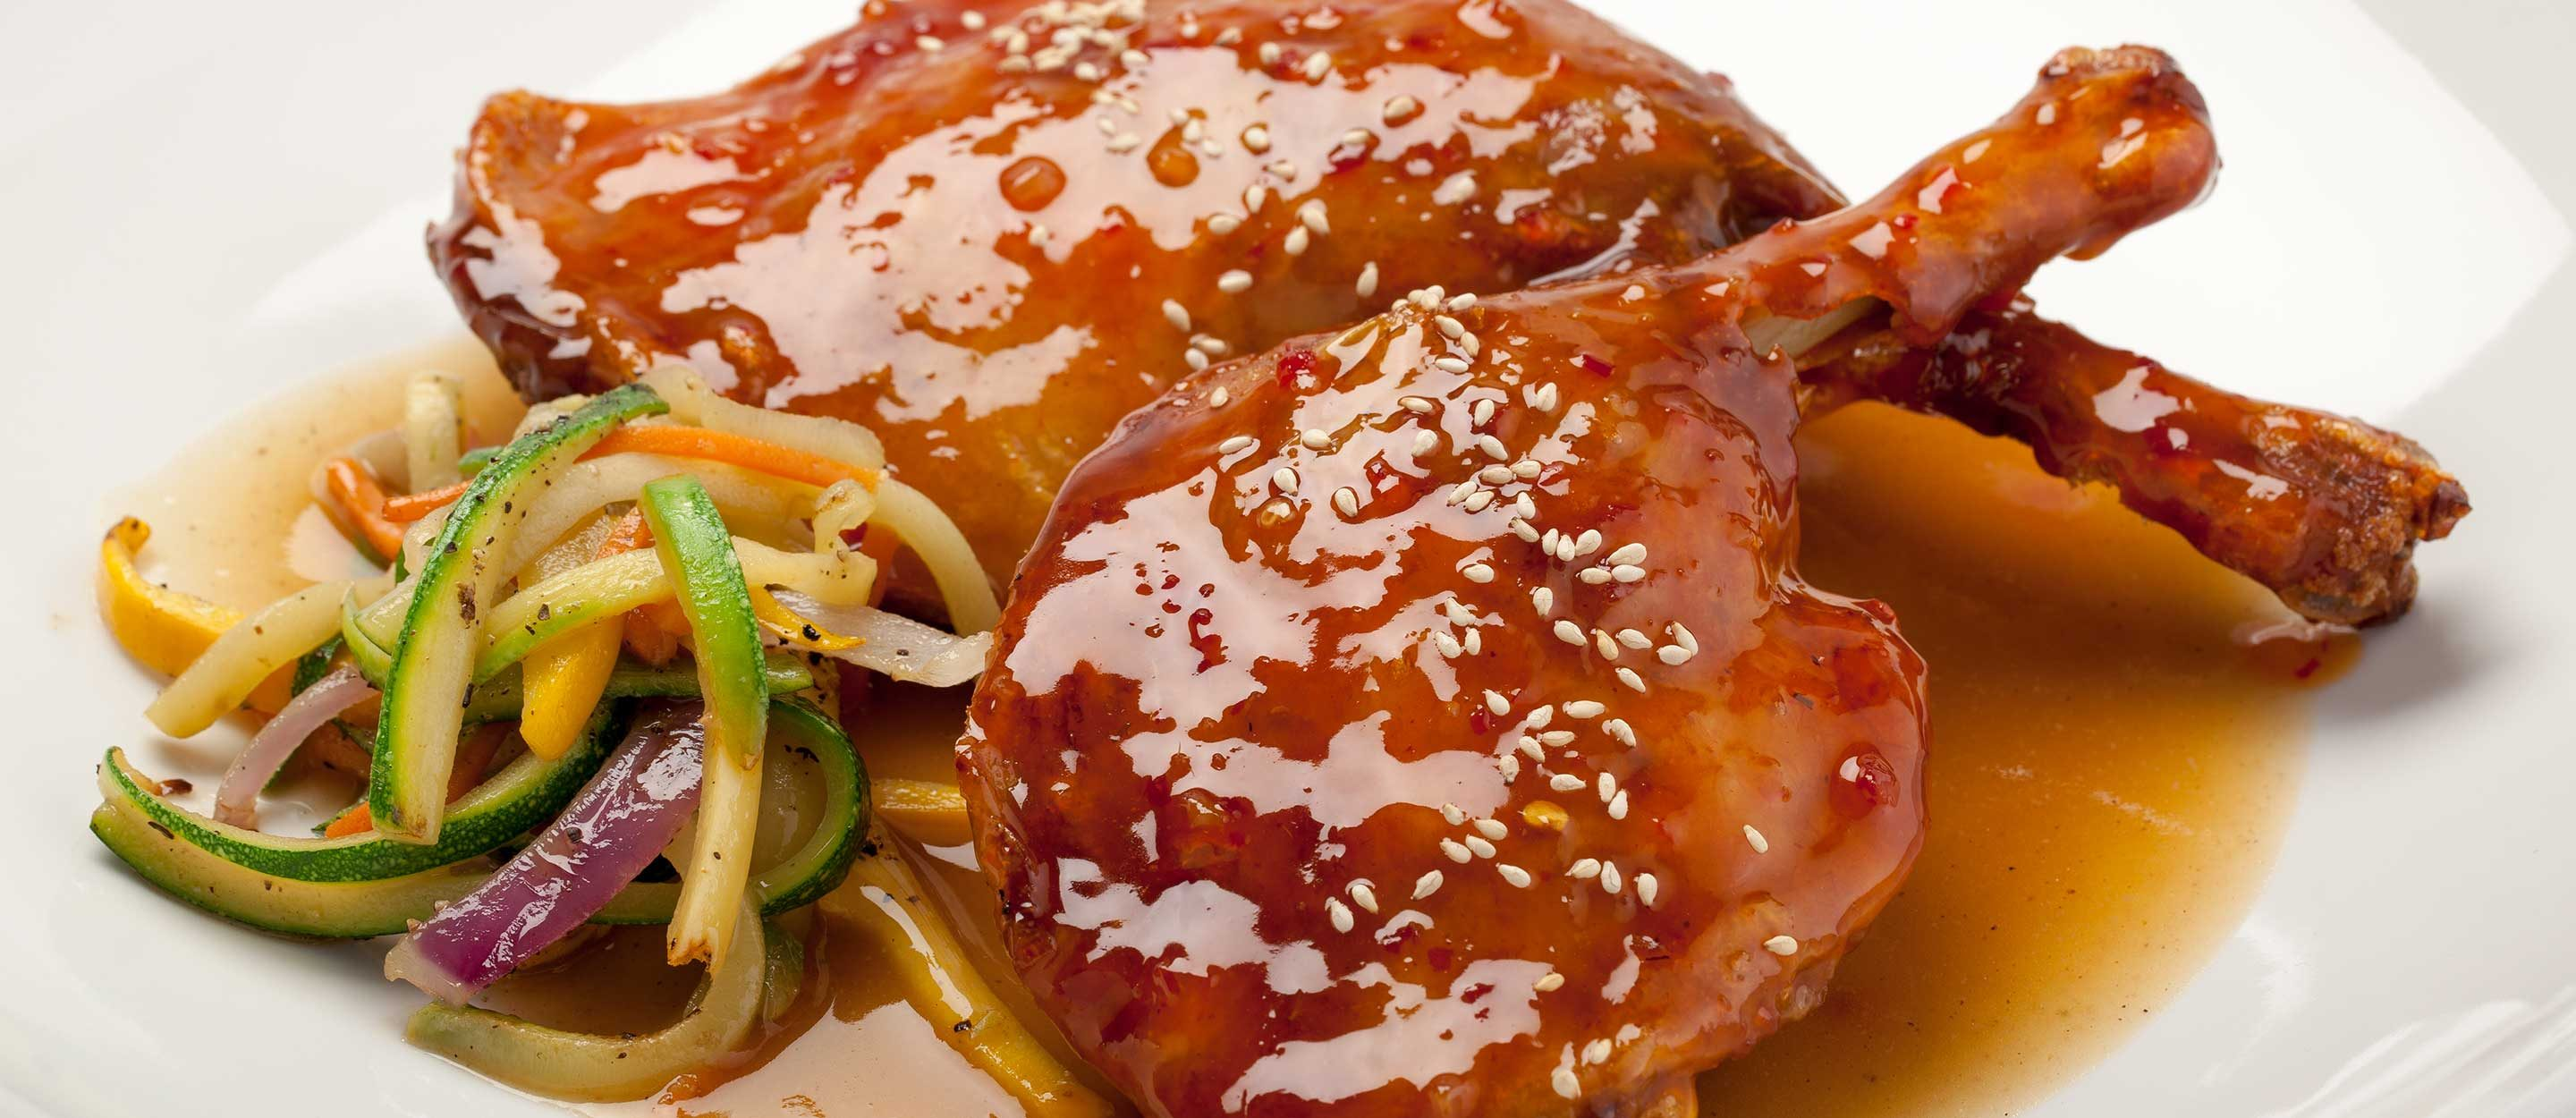 Maple Leaf duck legs Archives - Ginsberg's Foods